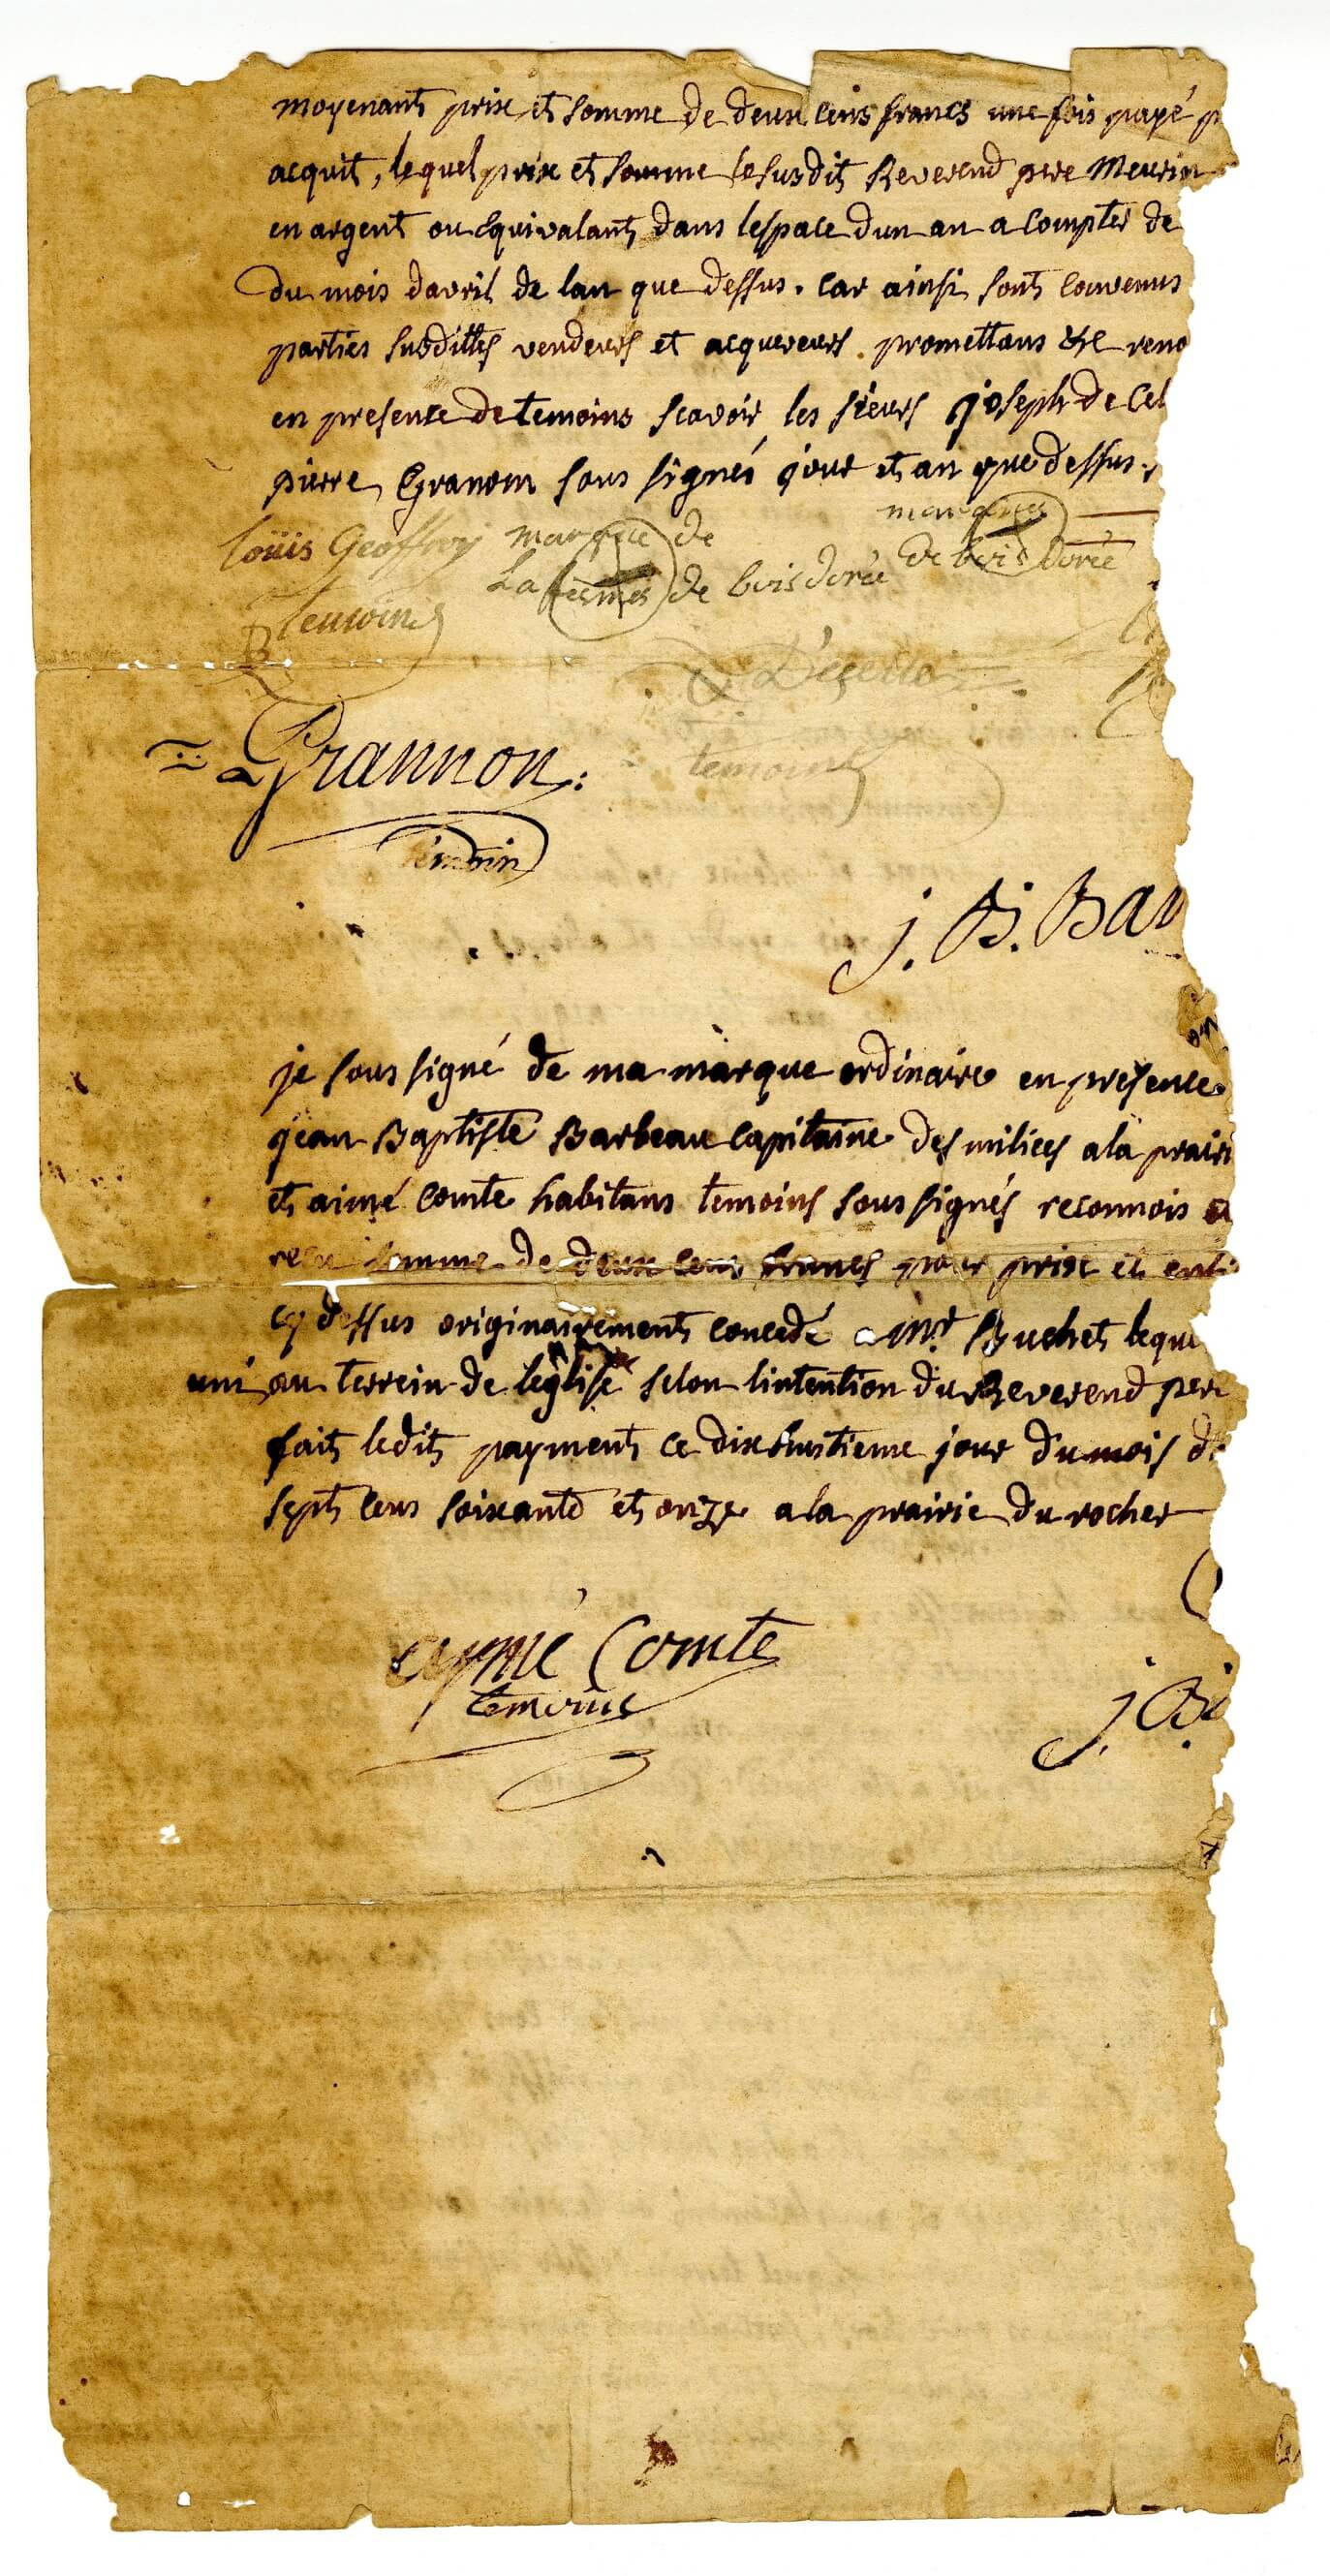 Legal_-_Contracts_-_Prairie_du_Rocher_1771_Contract_with_Rev._Louis_Meurin_side_2_50 (1)